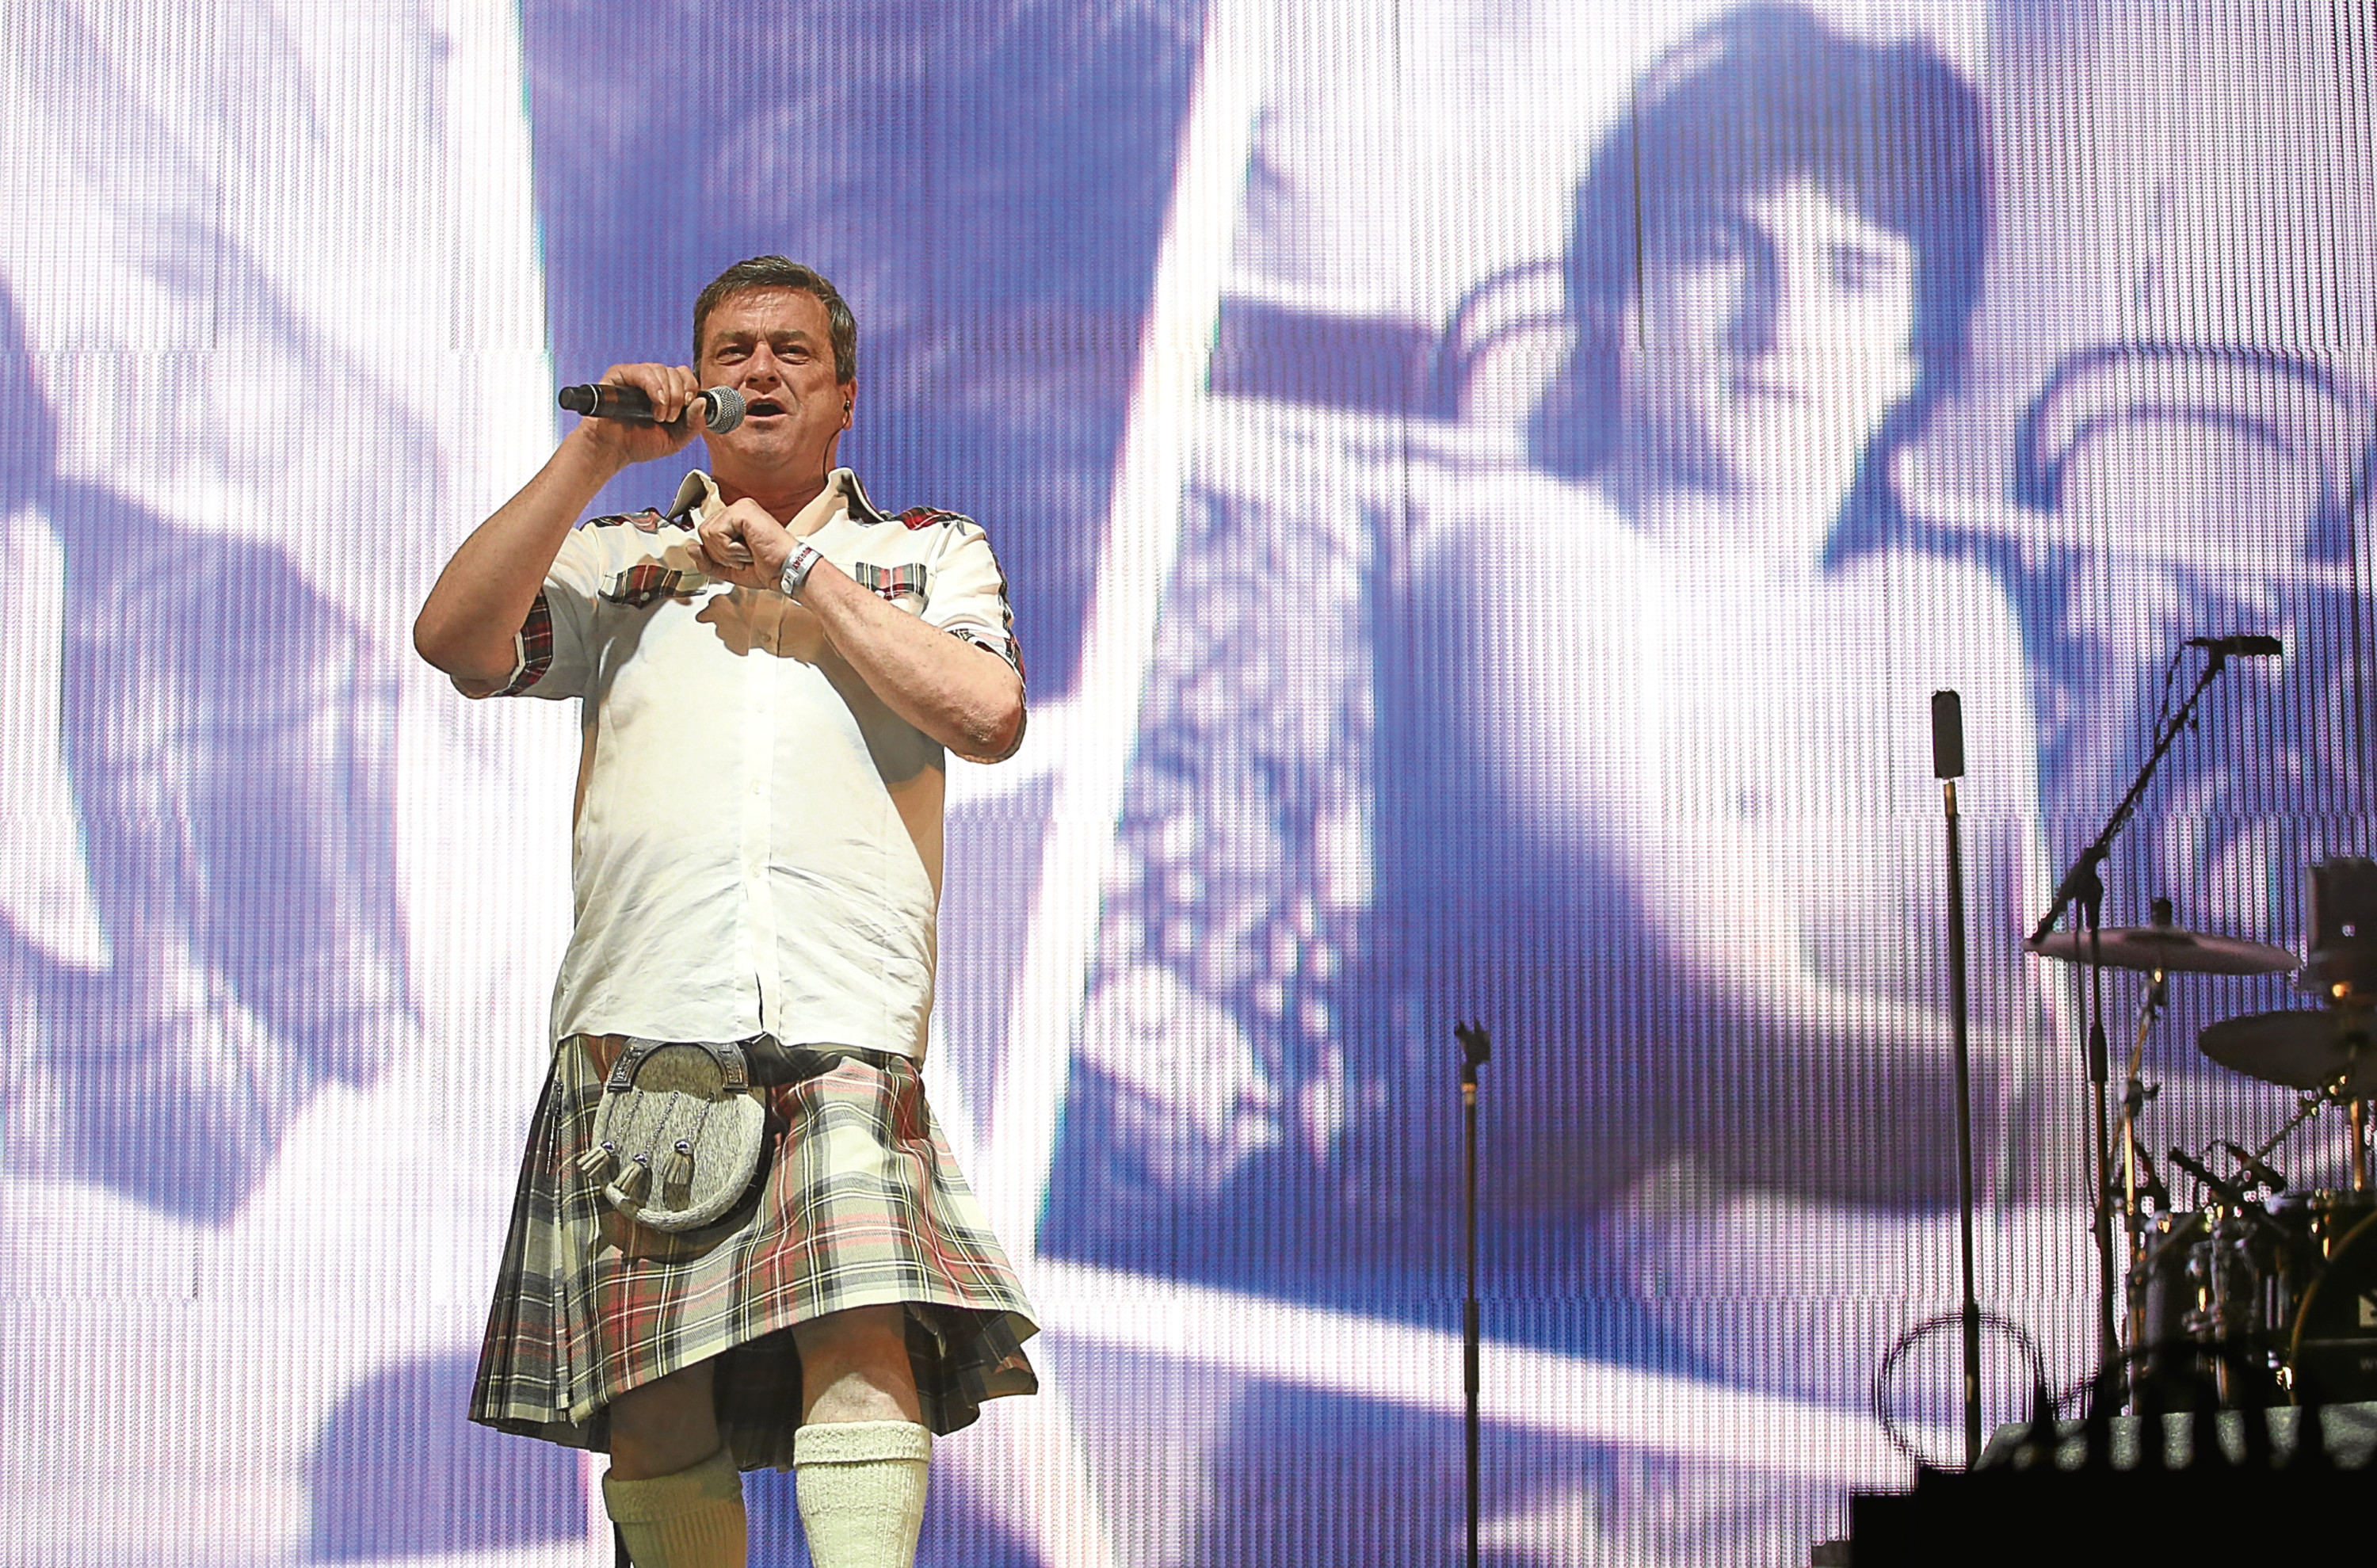 Les McKeown of the Bay City Rollers at T in the Park (Jane Barlow / PA Wire)